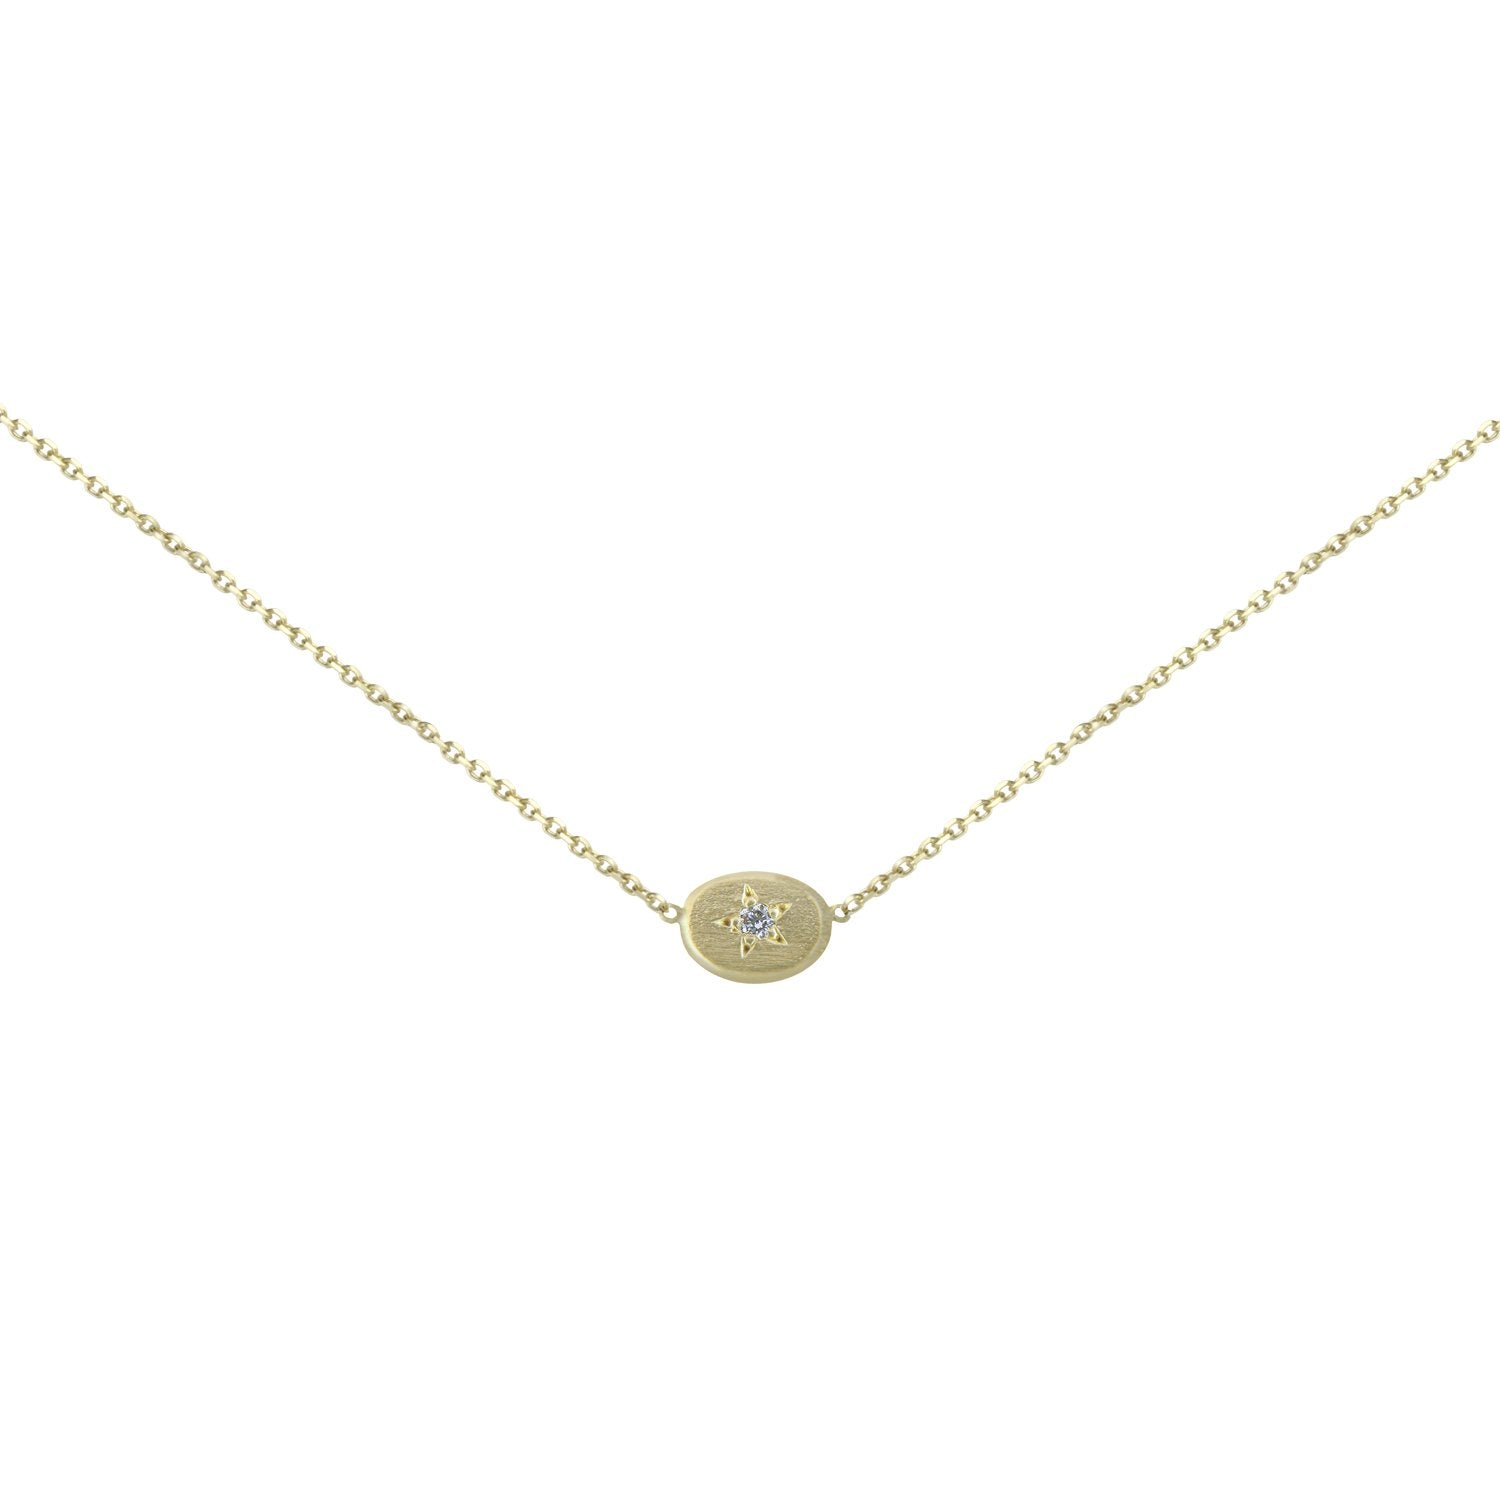 Vincents Fine Jewelry | Sweet Pea | Starry Night Necklace